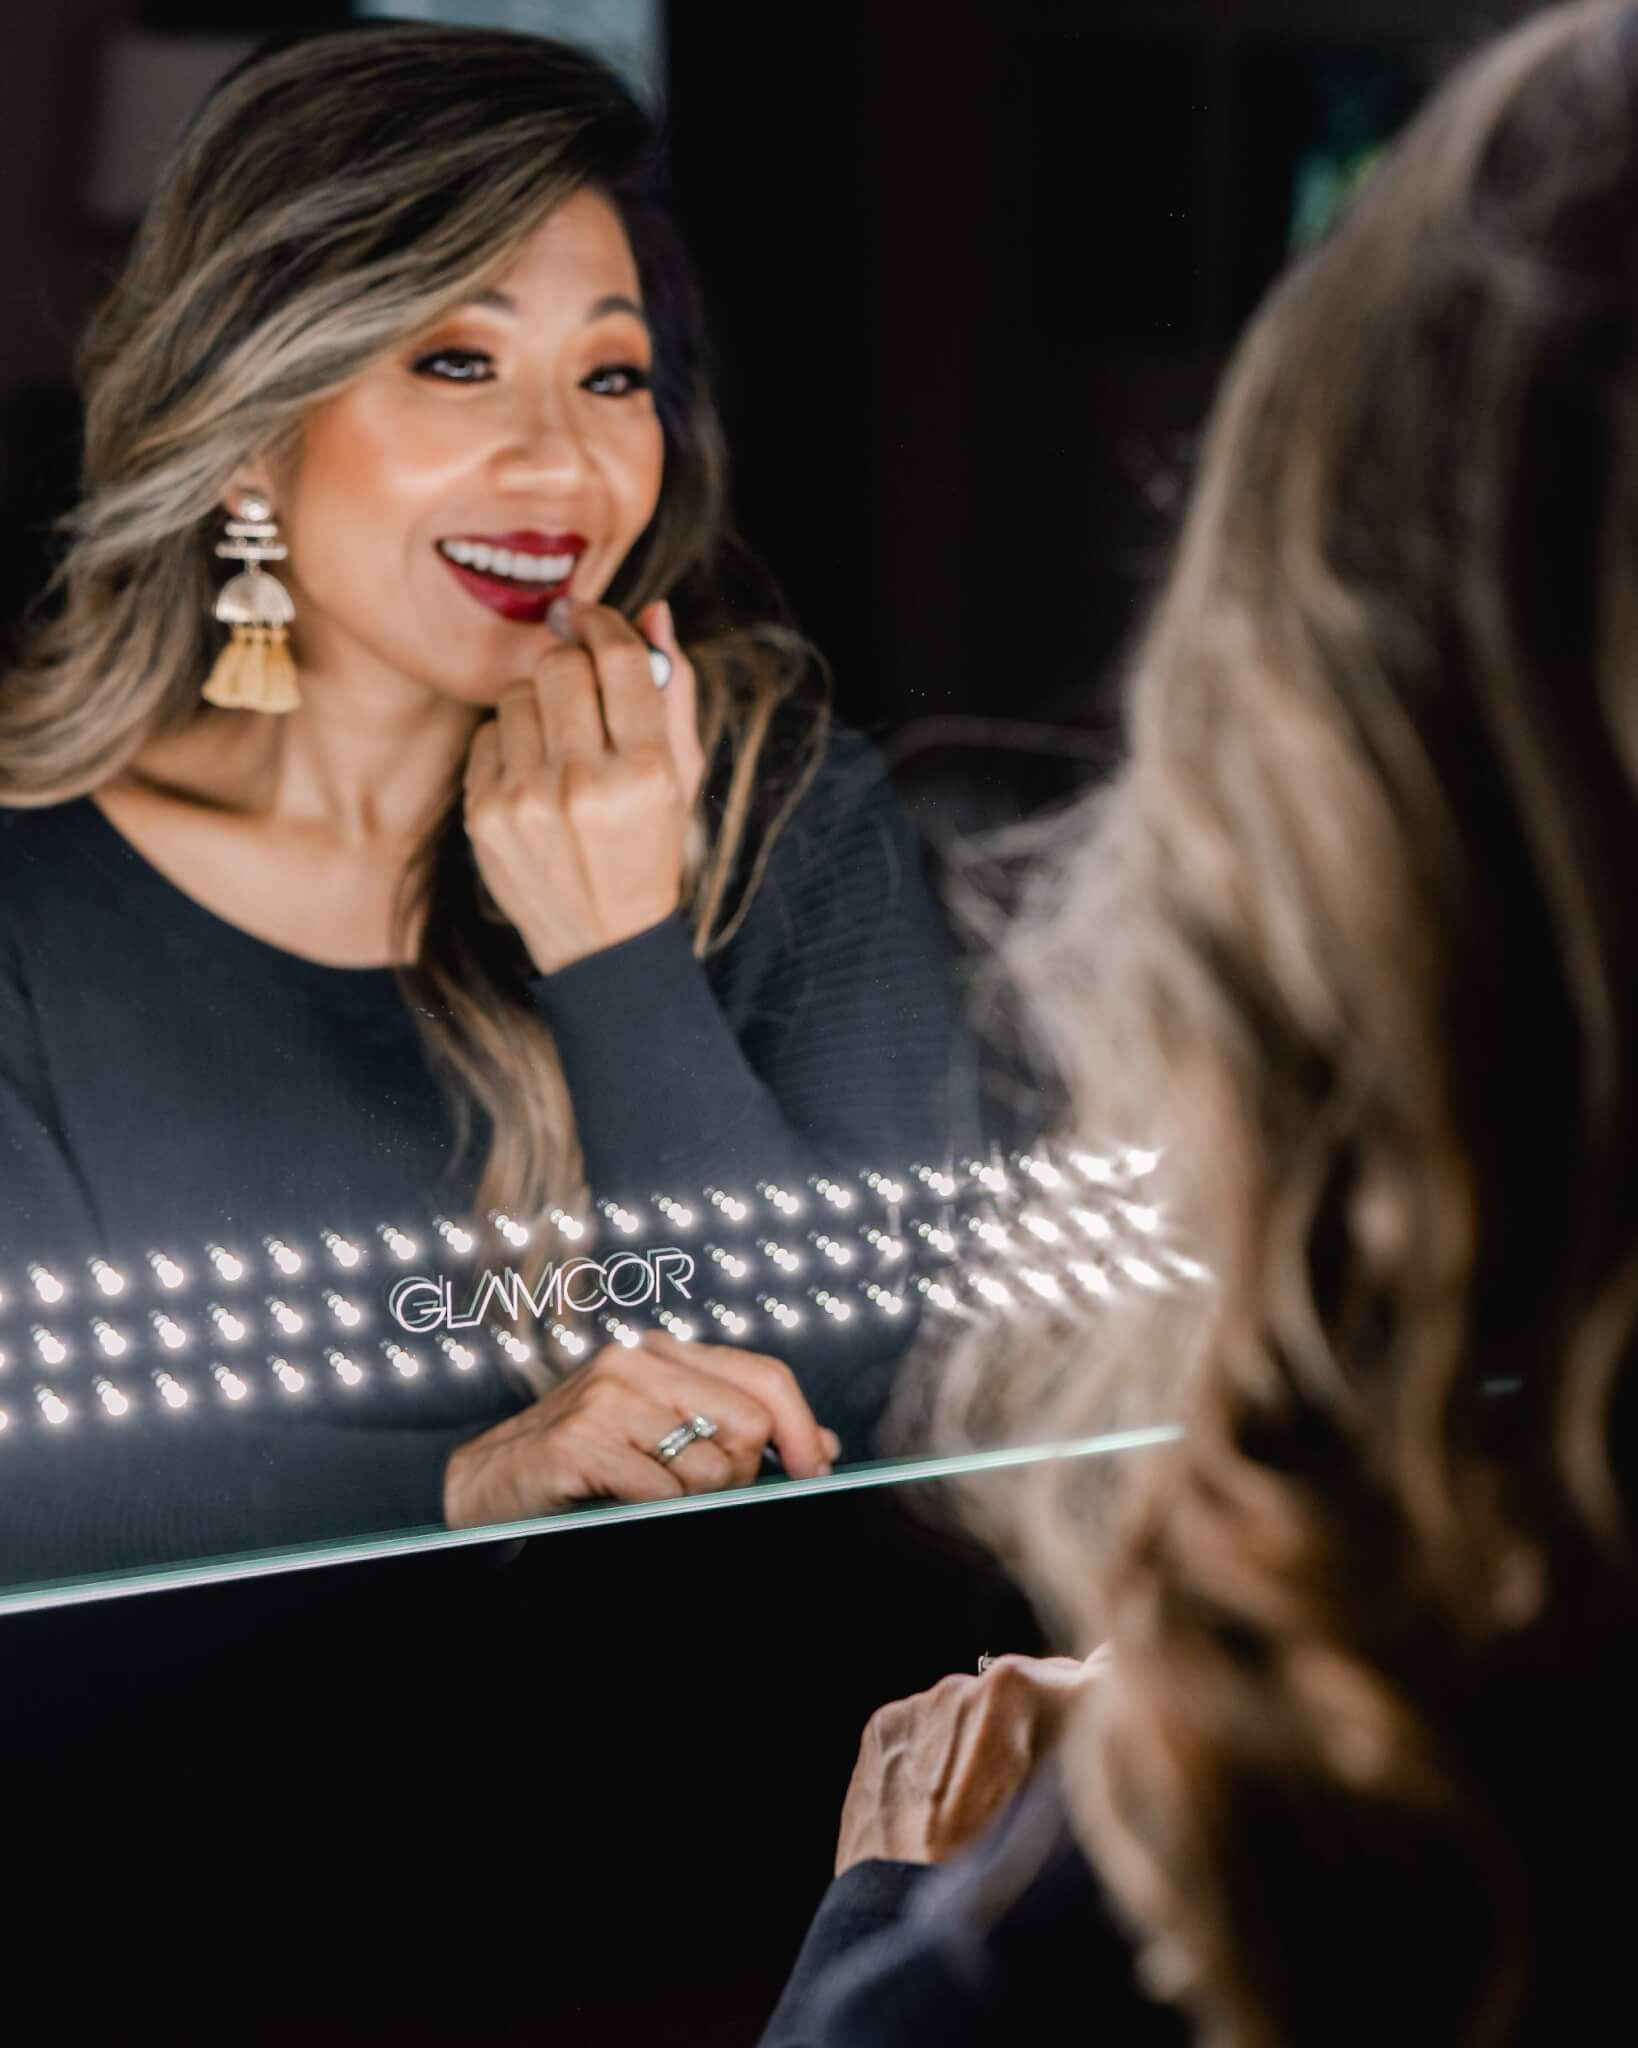 woman standing in front of glamcor socialite mirror smiling and applying red lipstick